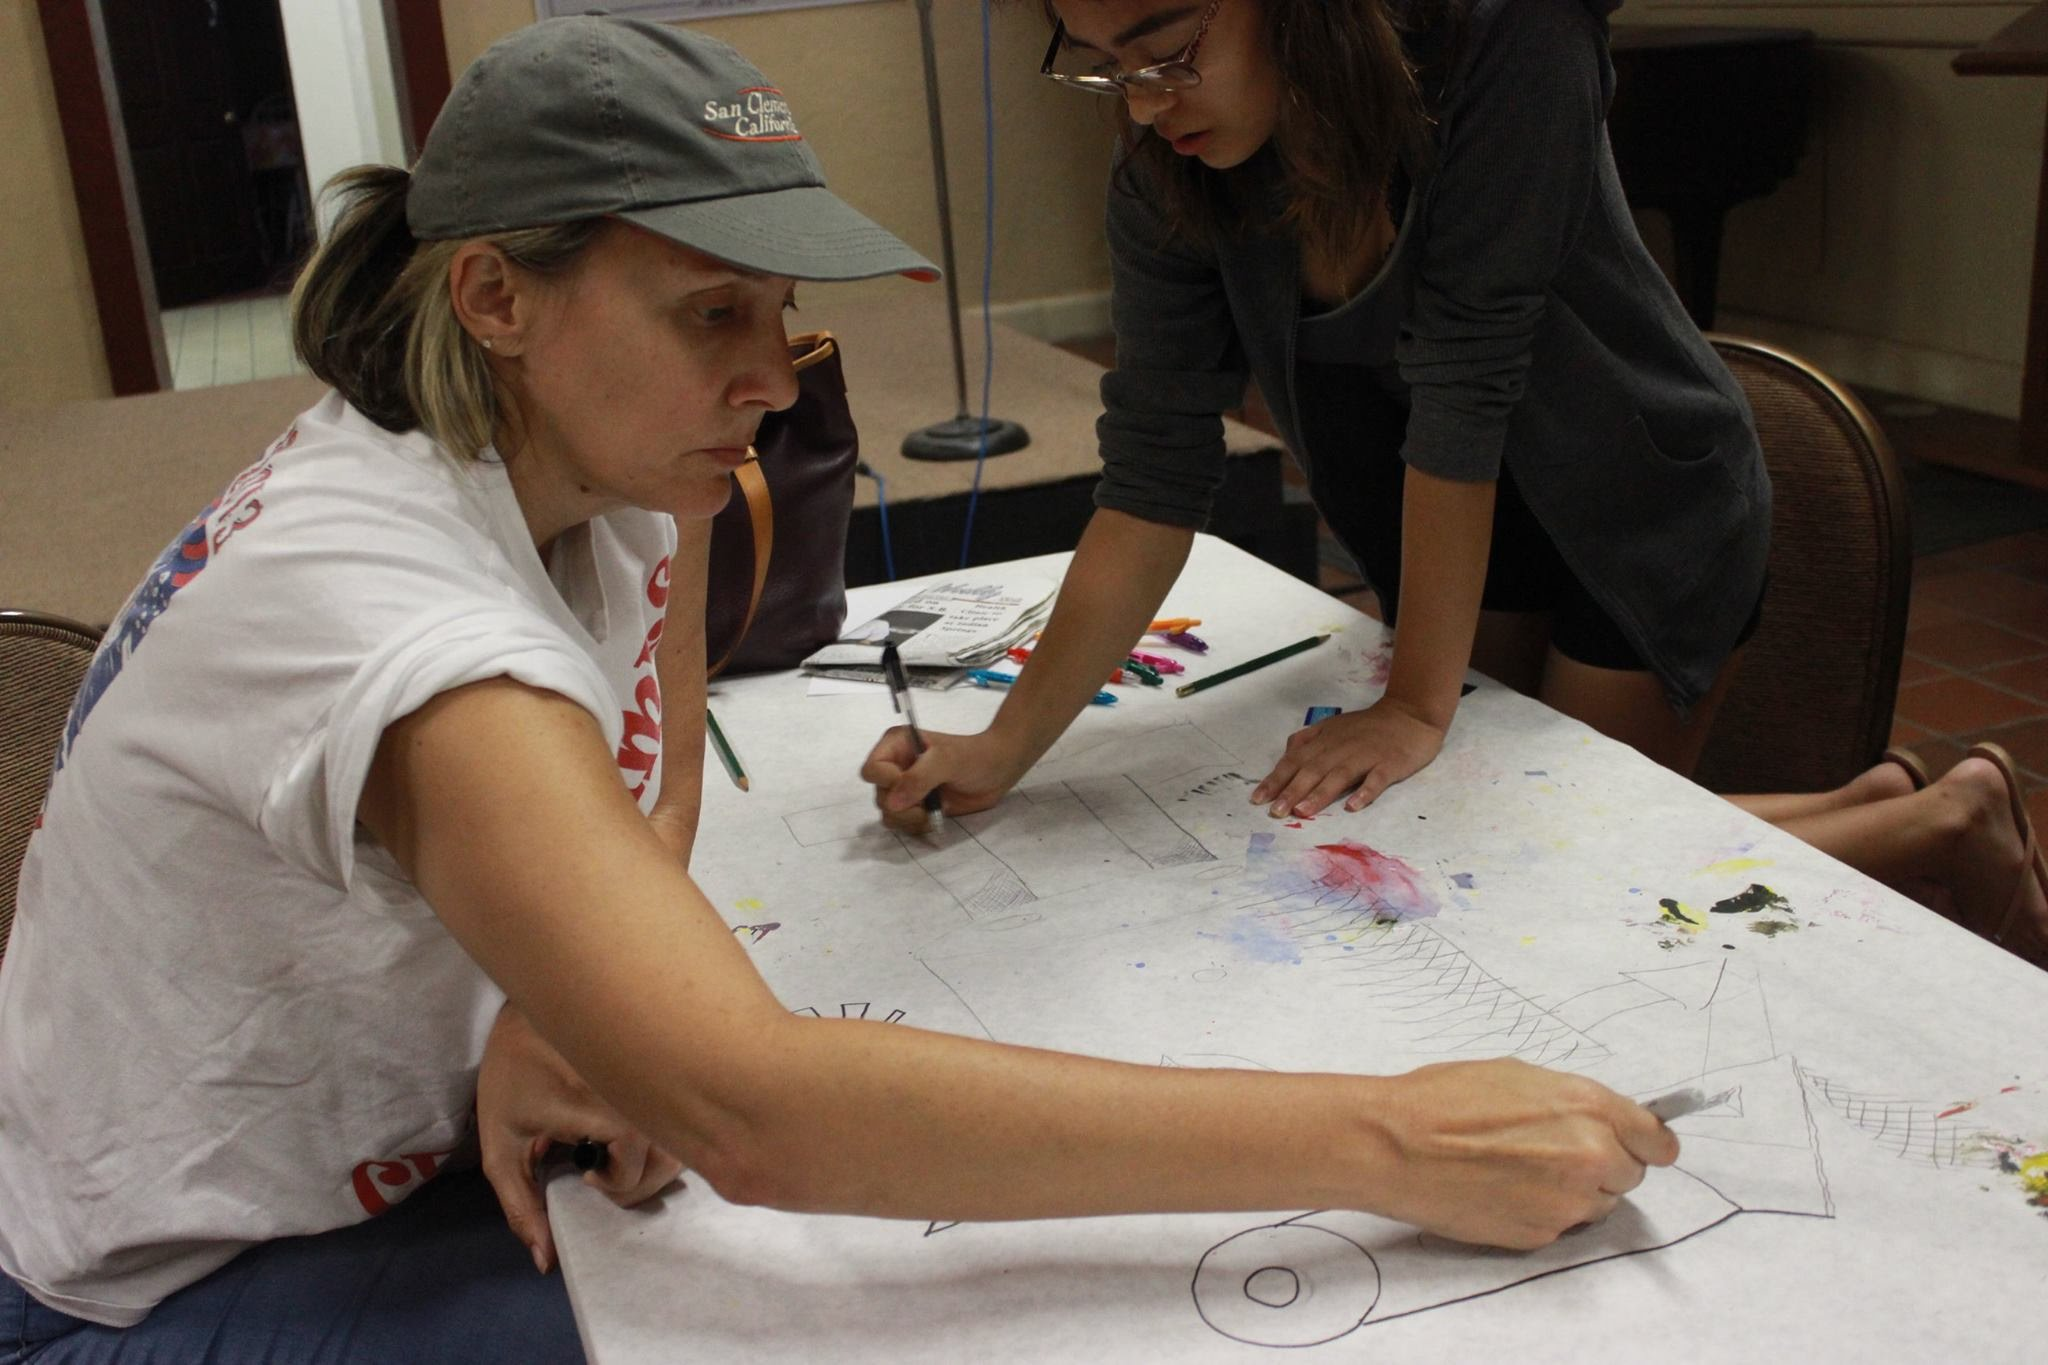 Participants use a Large Surface to Draw